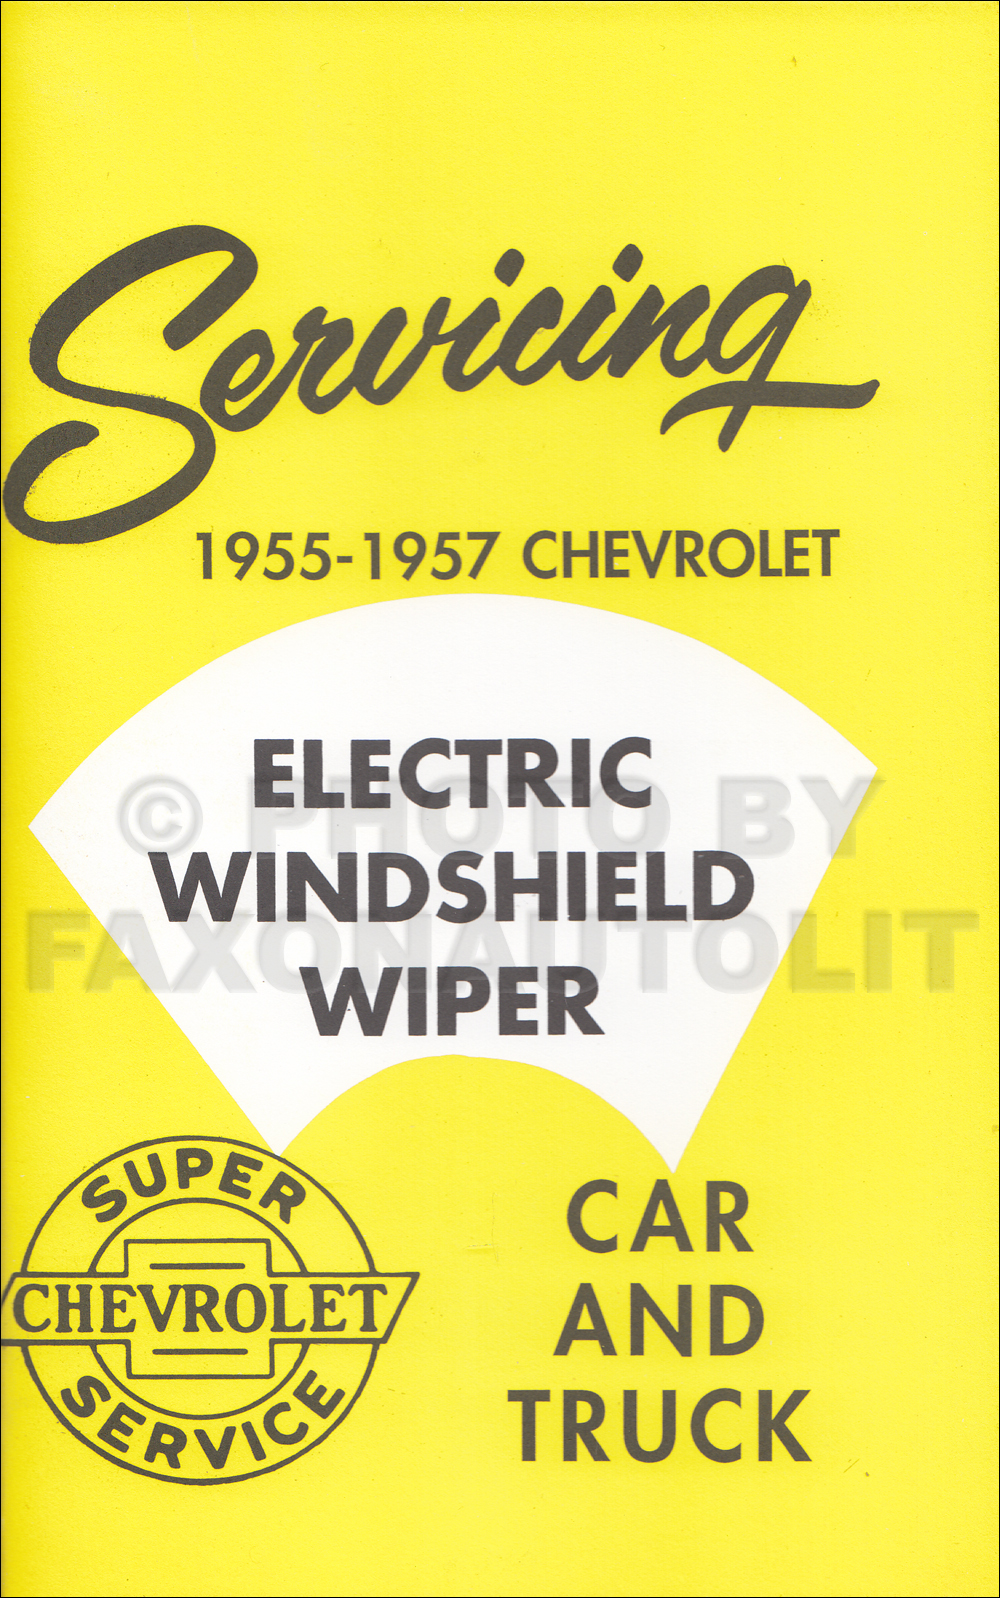 1955-1957 Chevrolet Windshield Wipers Service Training Manual Reprint